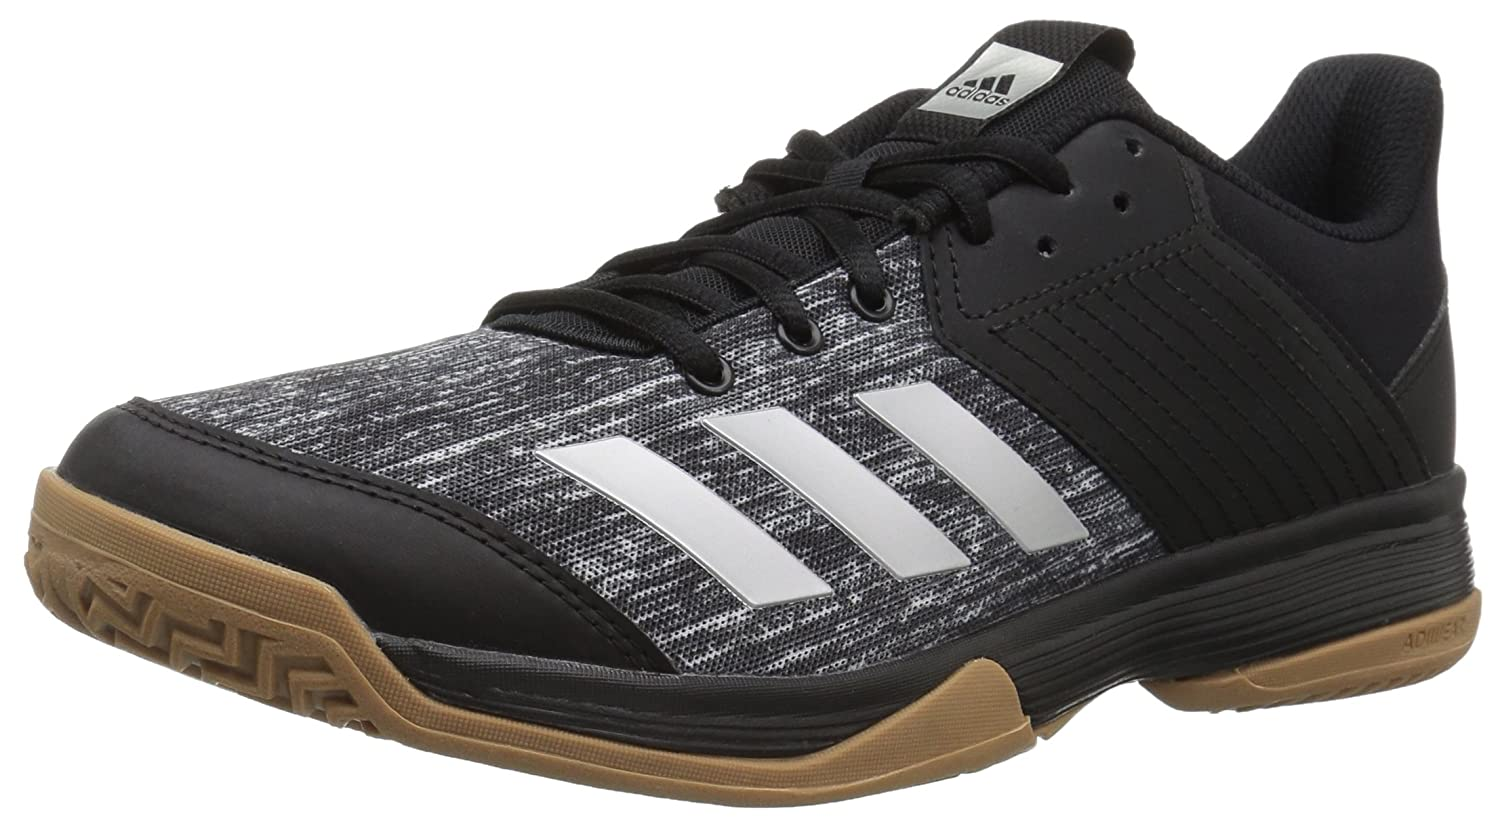 adidas Women's Ligra 6 Volleyball Shoe B077X4PLT8 13.5 B(M) US|Black/Silver Metallic/White